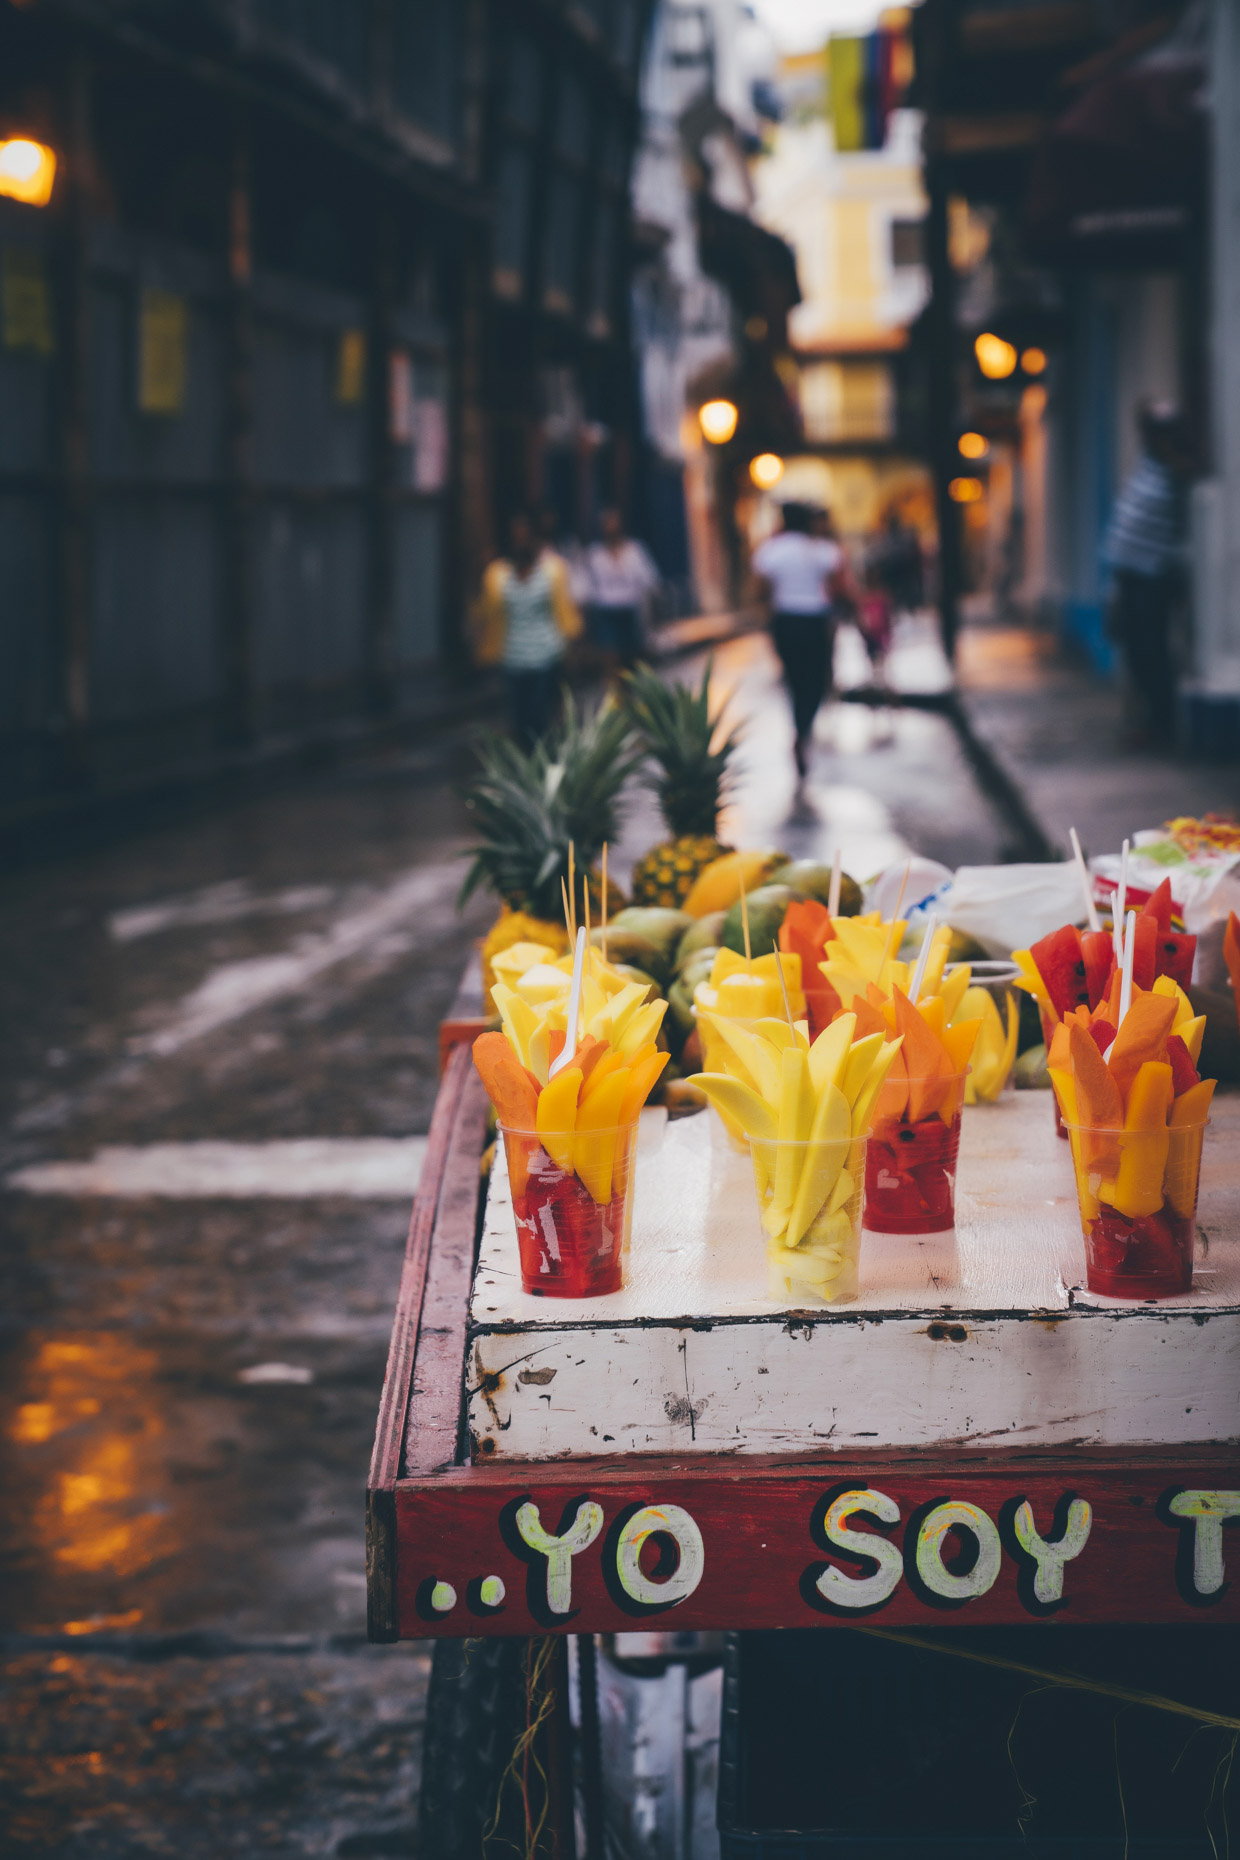 Fresh cut fruit on street cart at night in Cartagena, Colombia